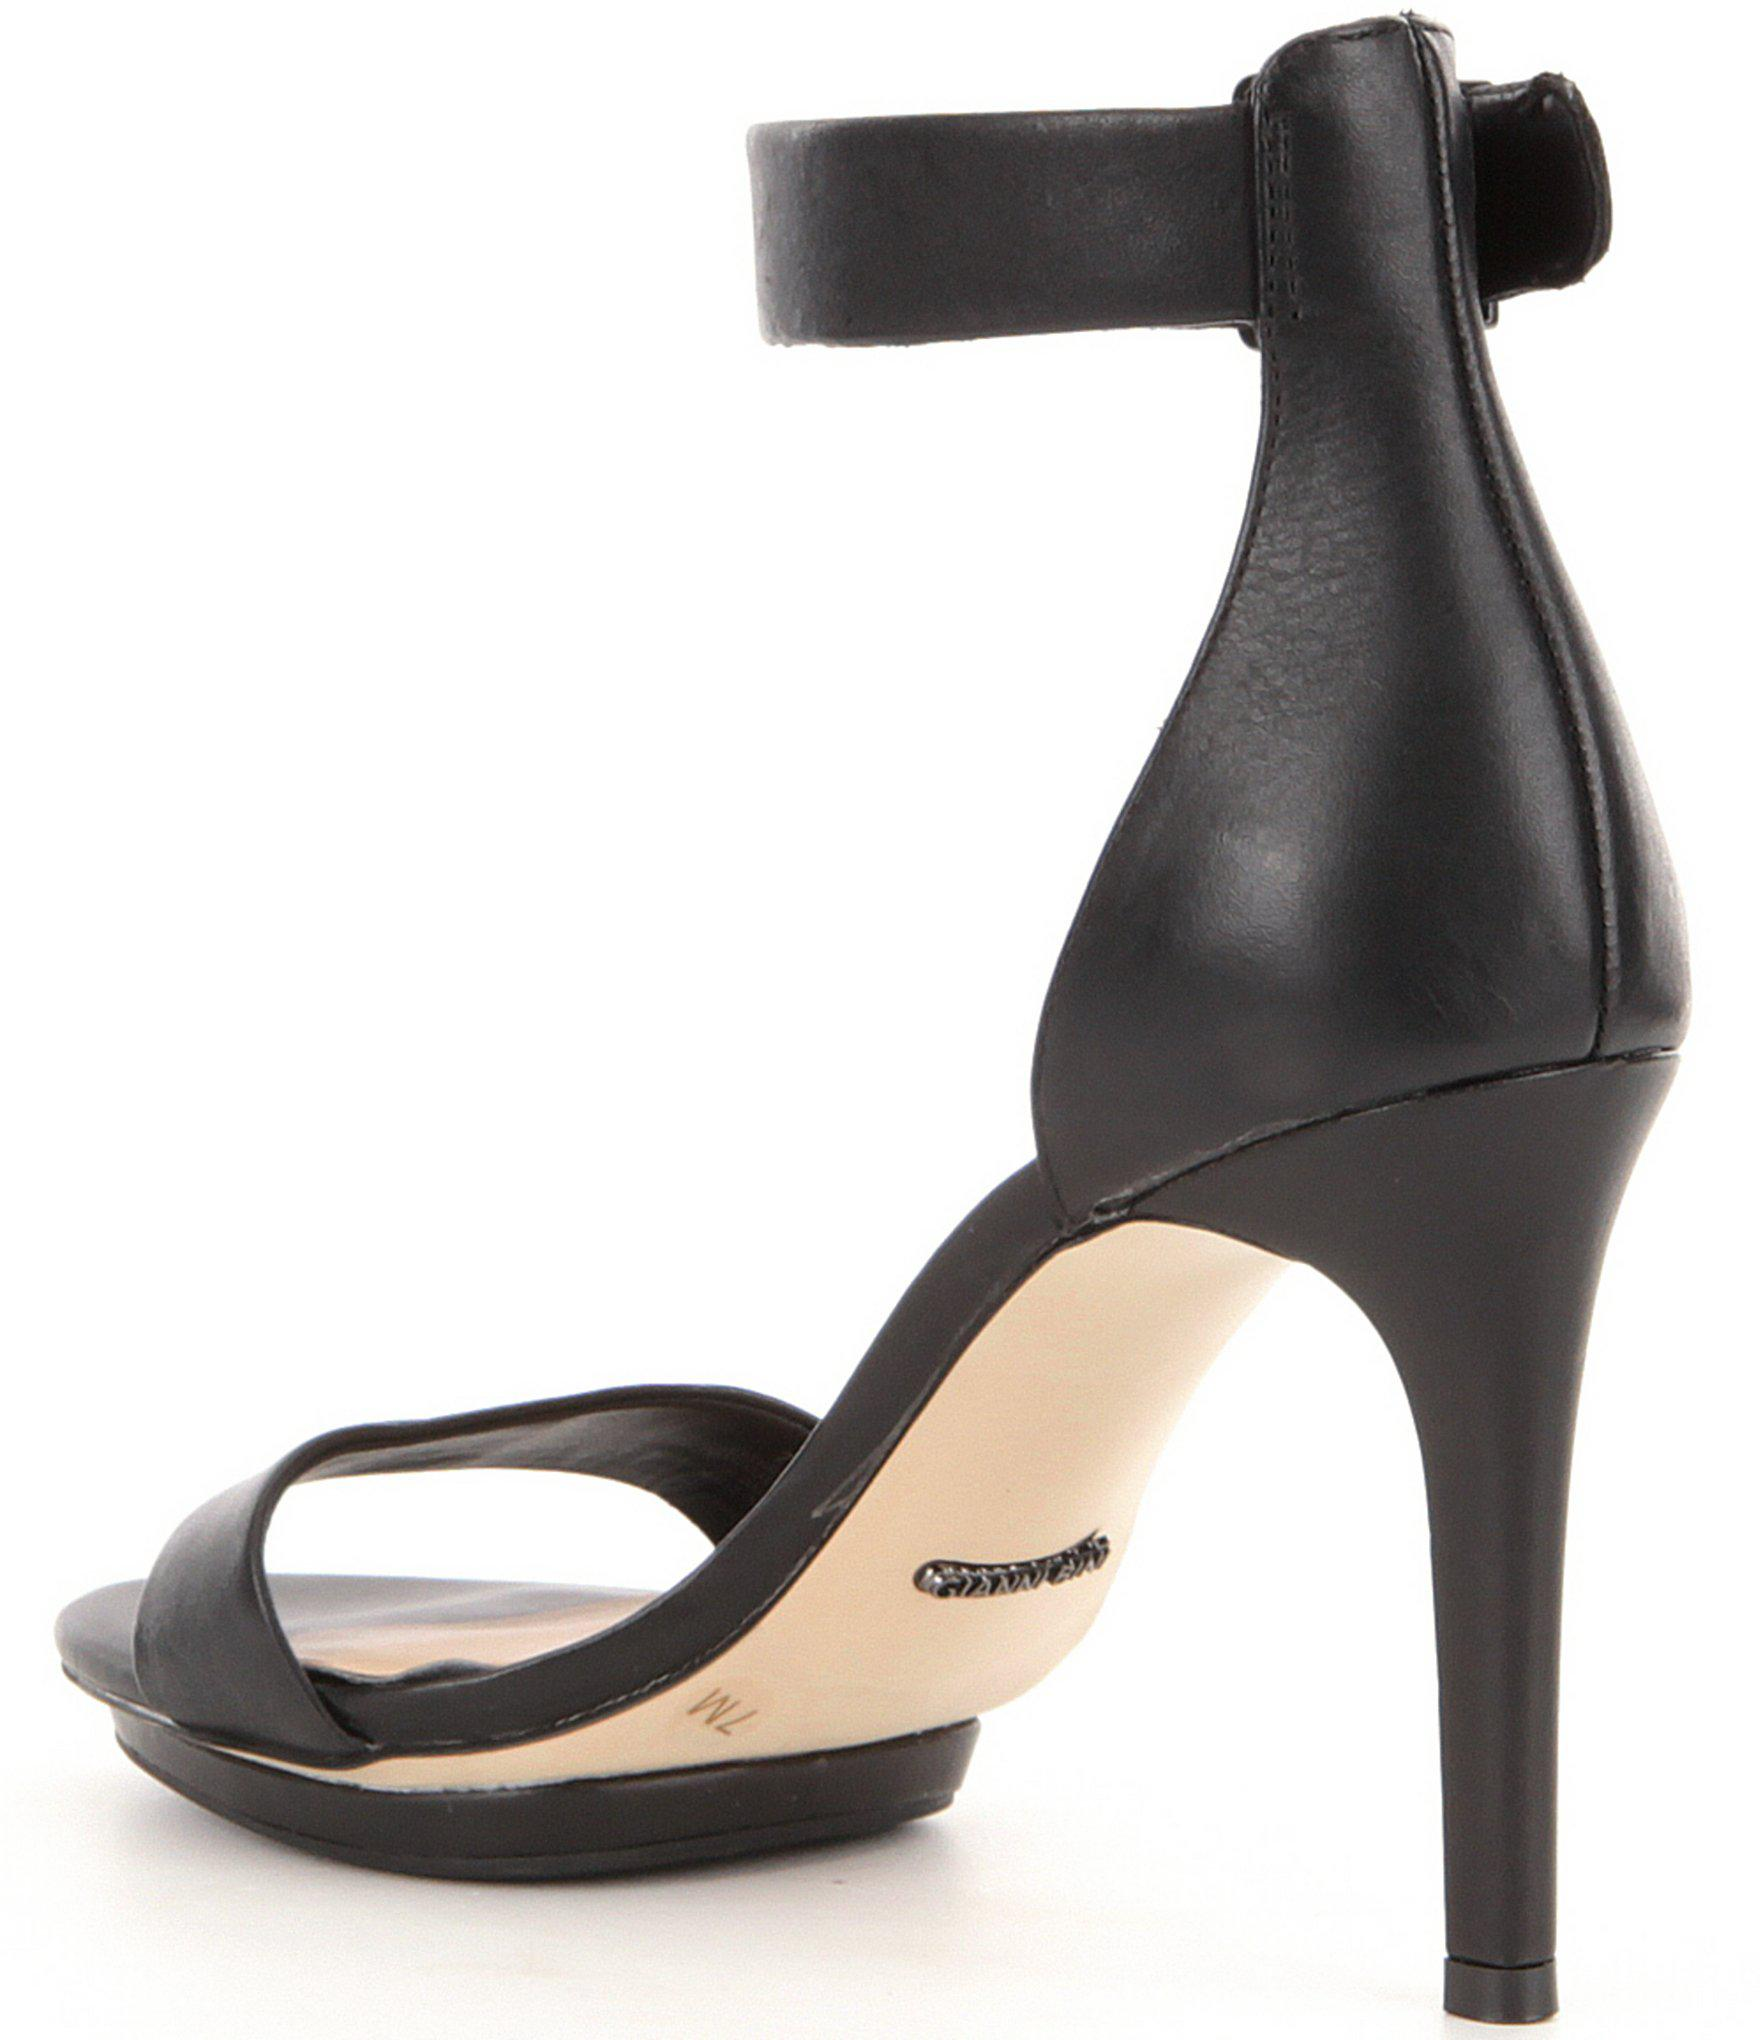 949a905f5544f Lyst - Gianni Bini Lizette Dress Sandals in Black